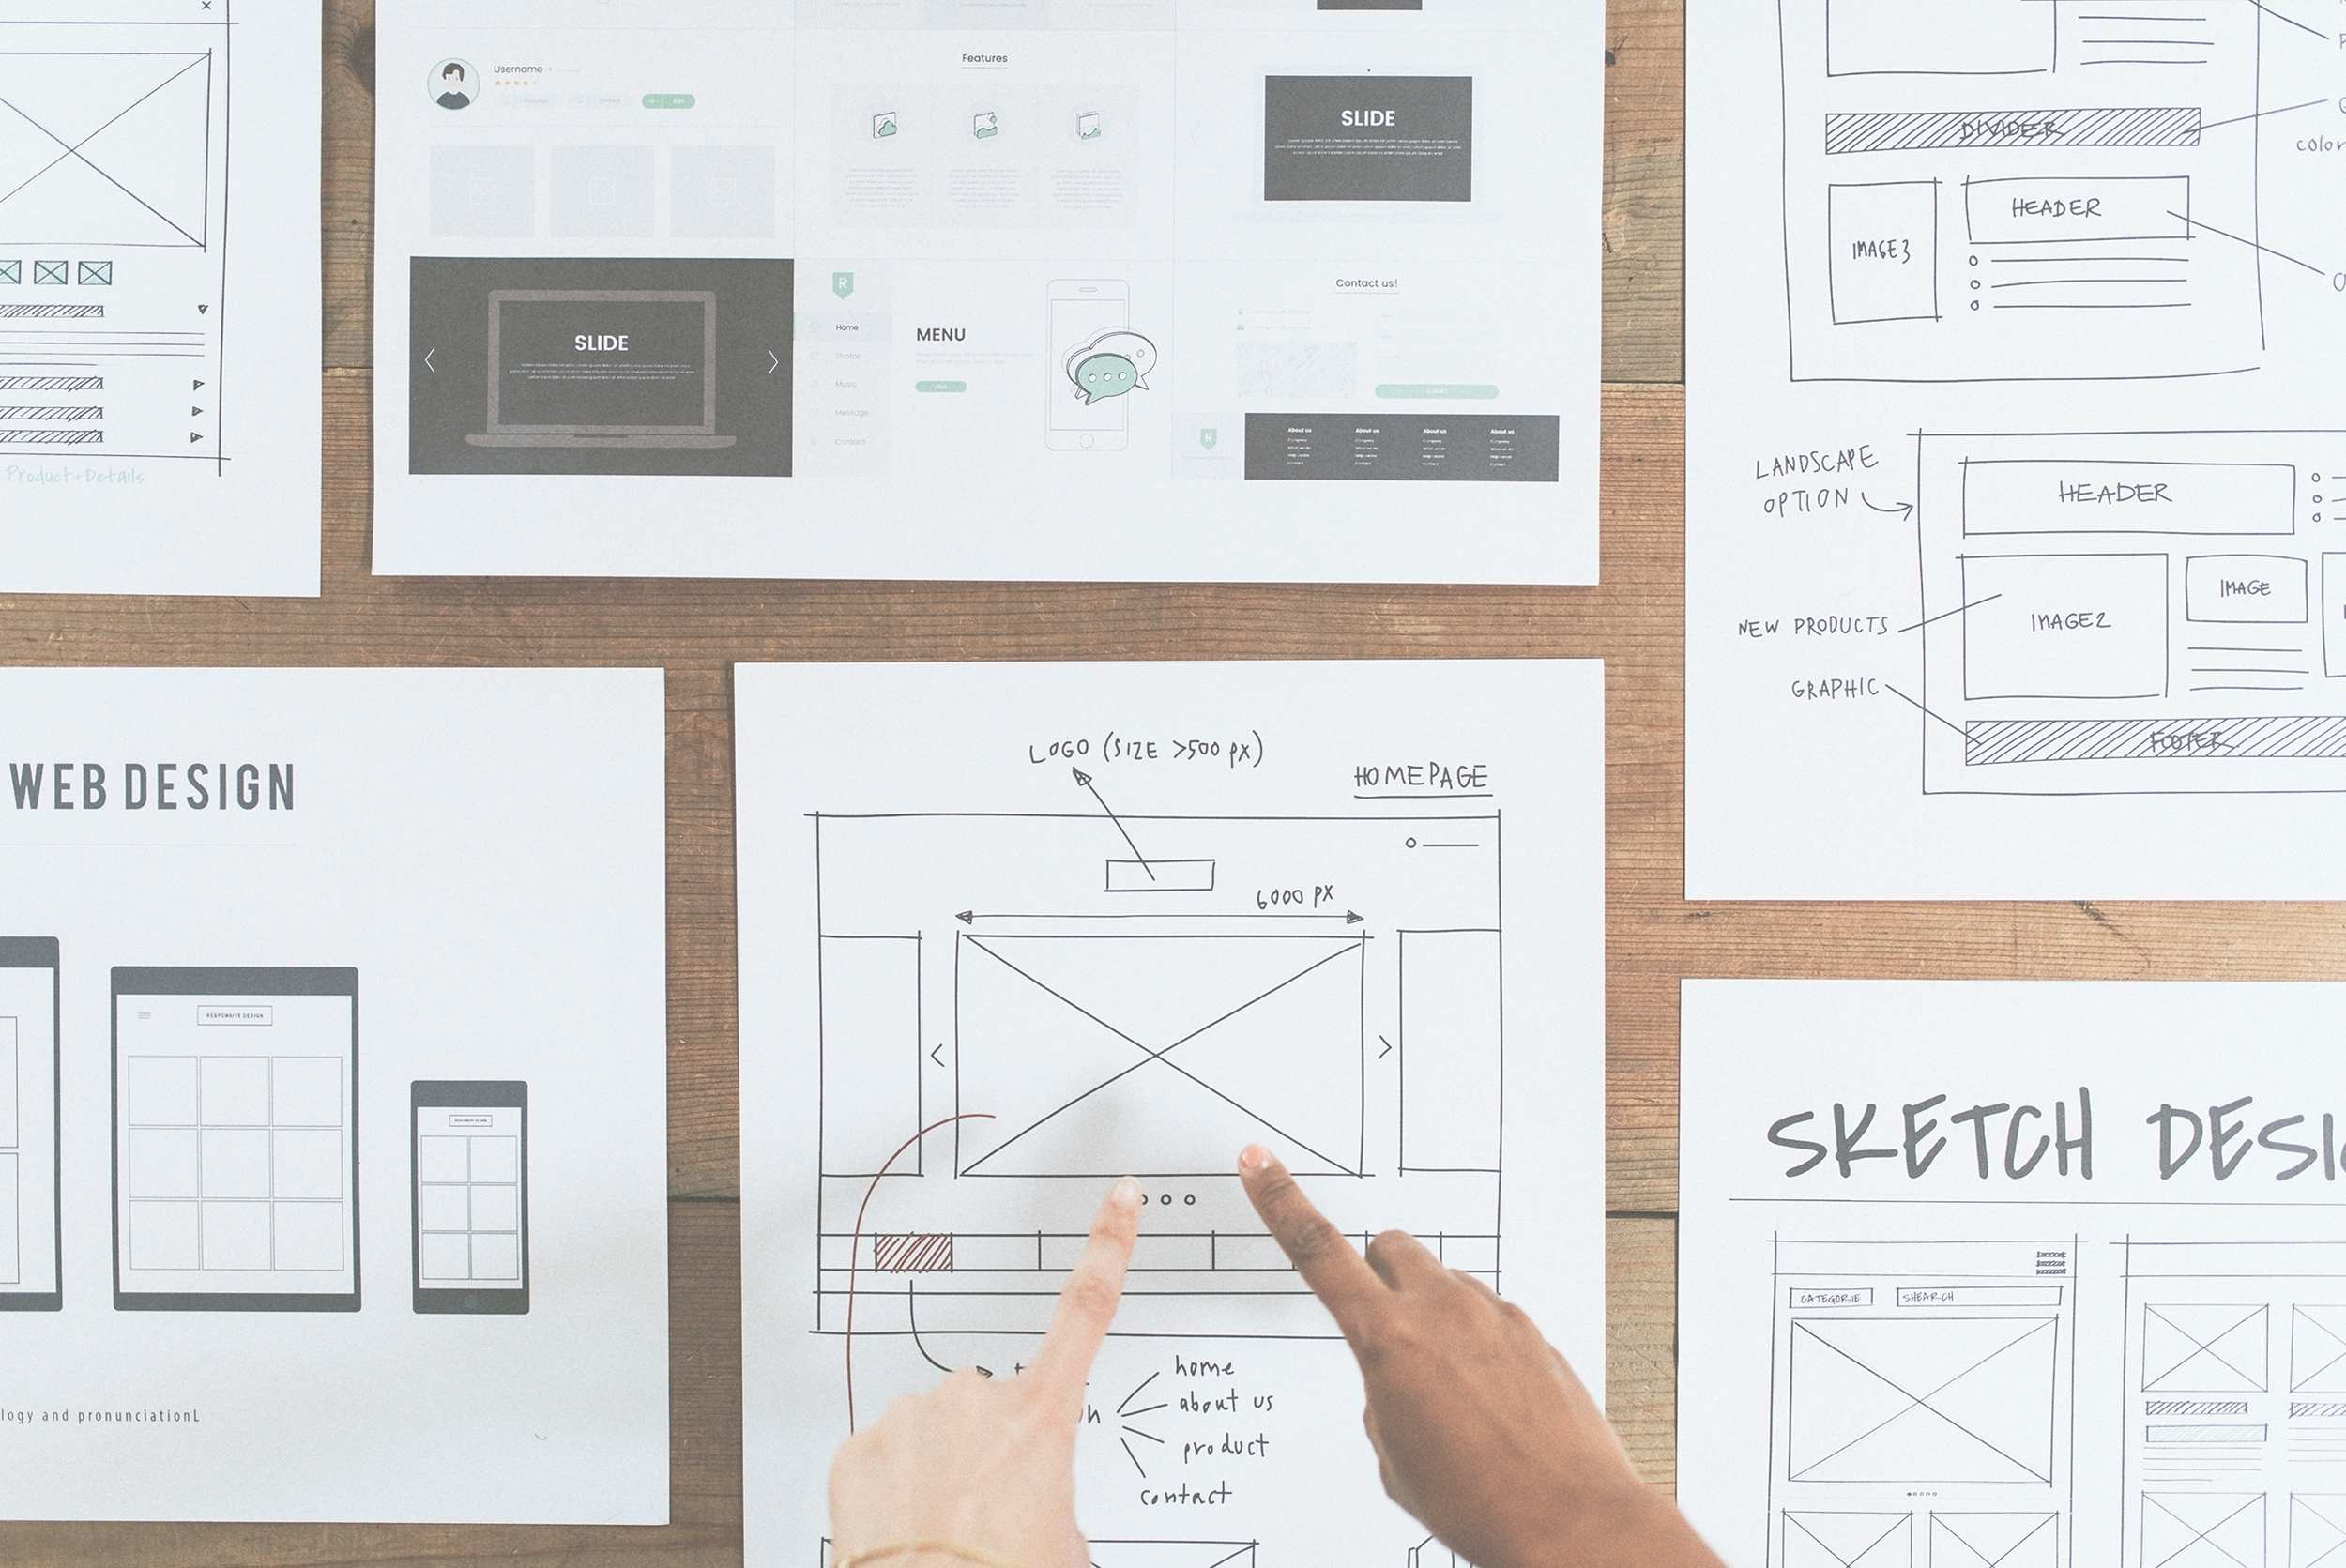 Hands point to web design document